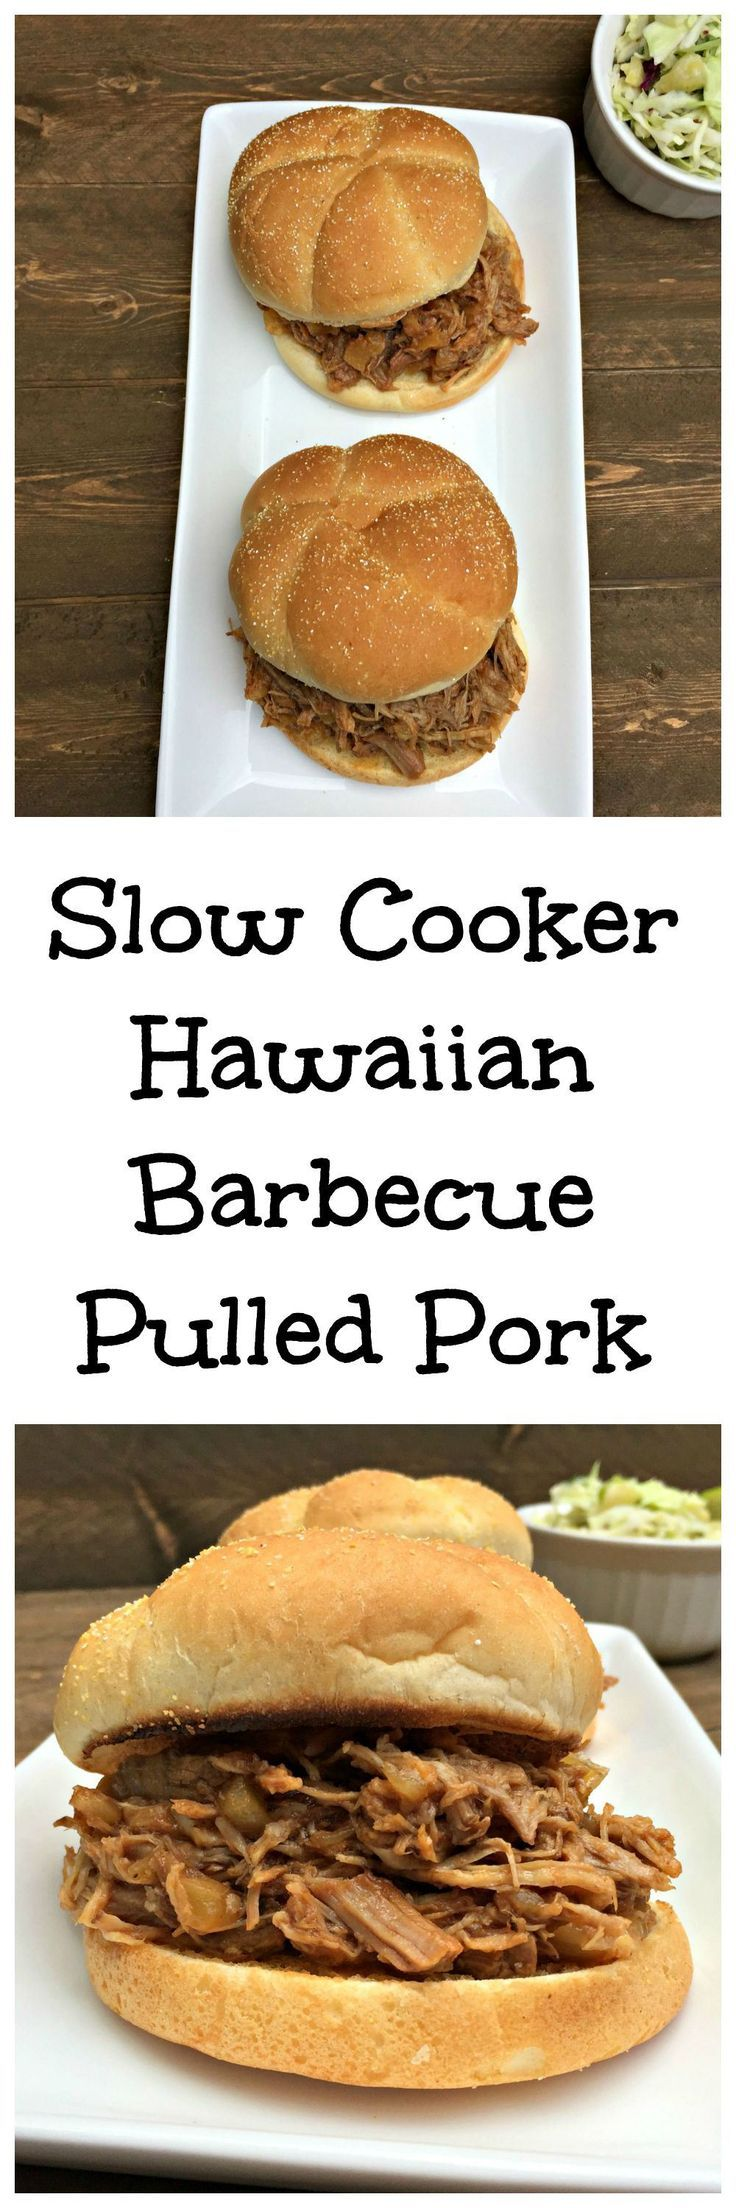 Hawaiian Barbecue Pulled Pork Slow Cooker